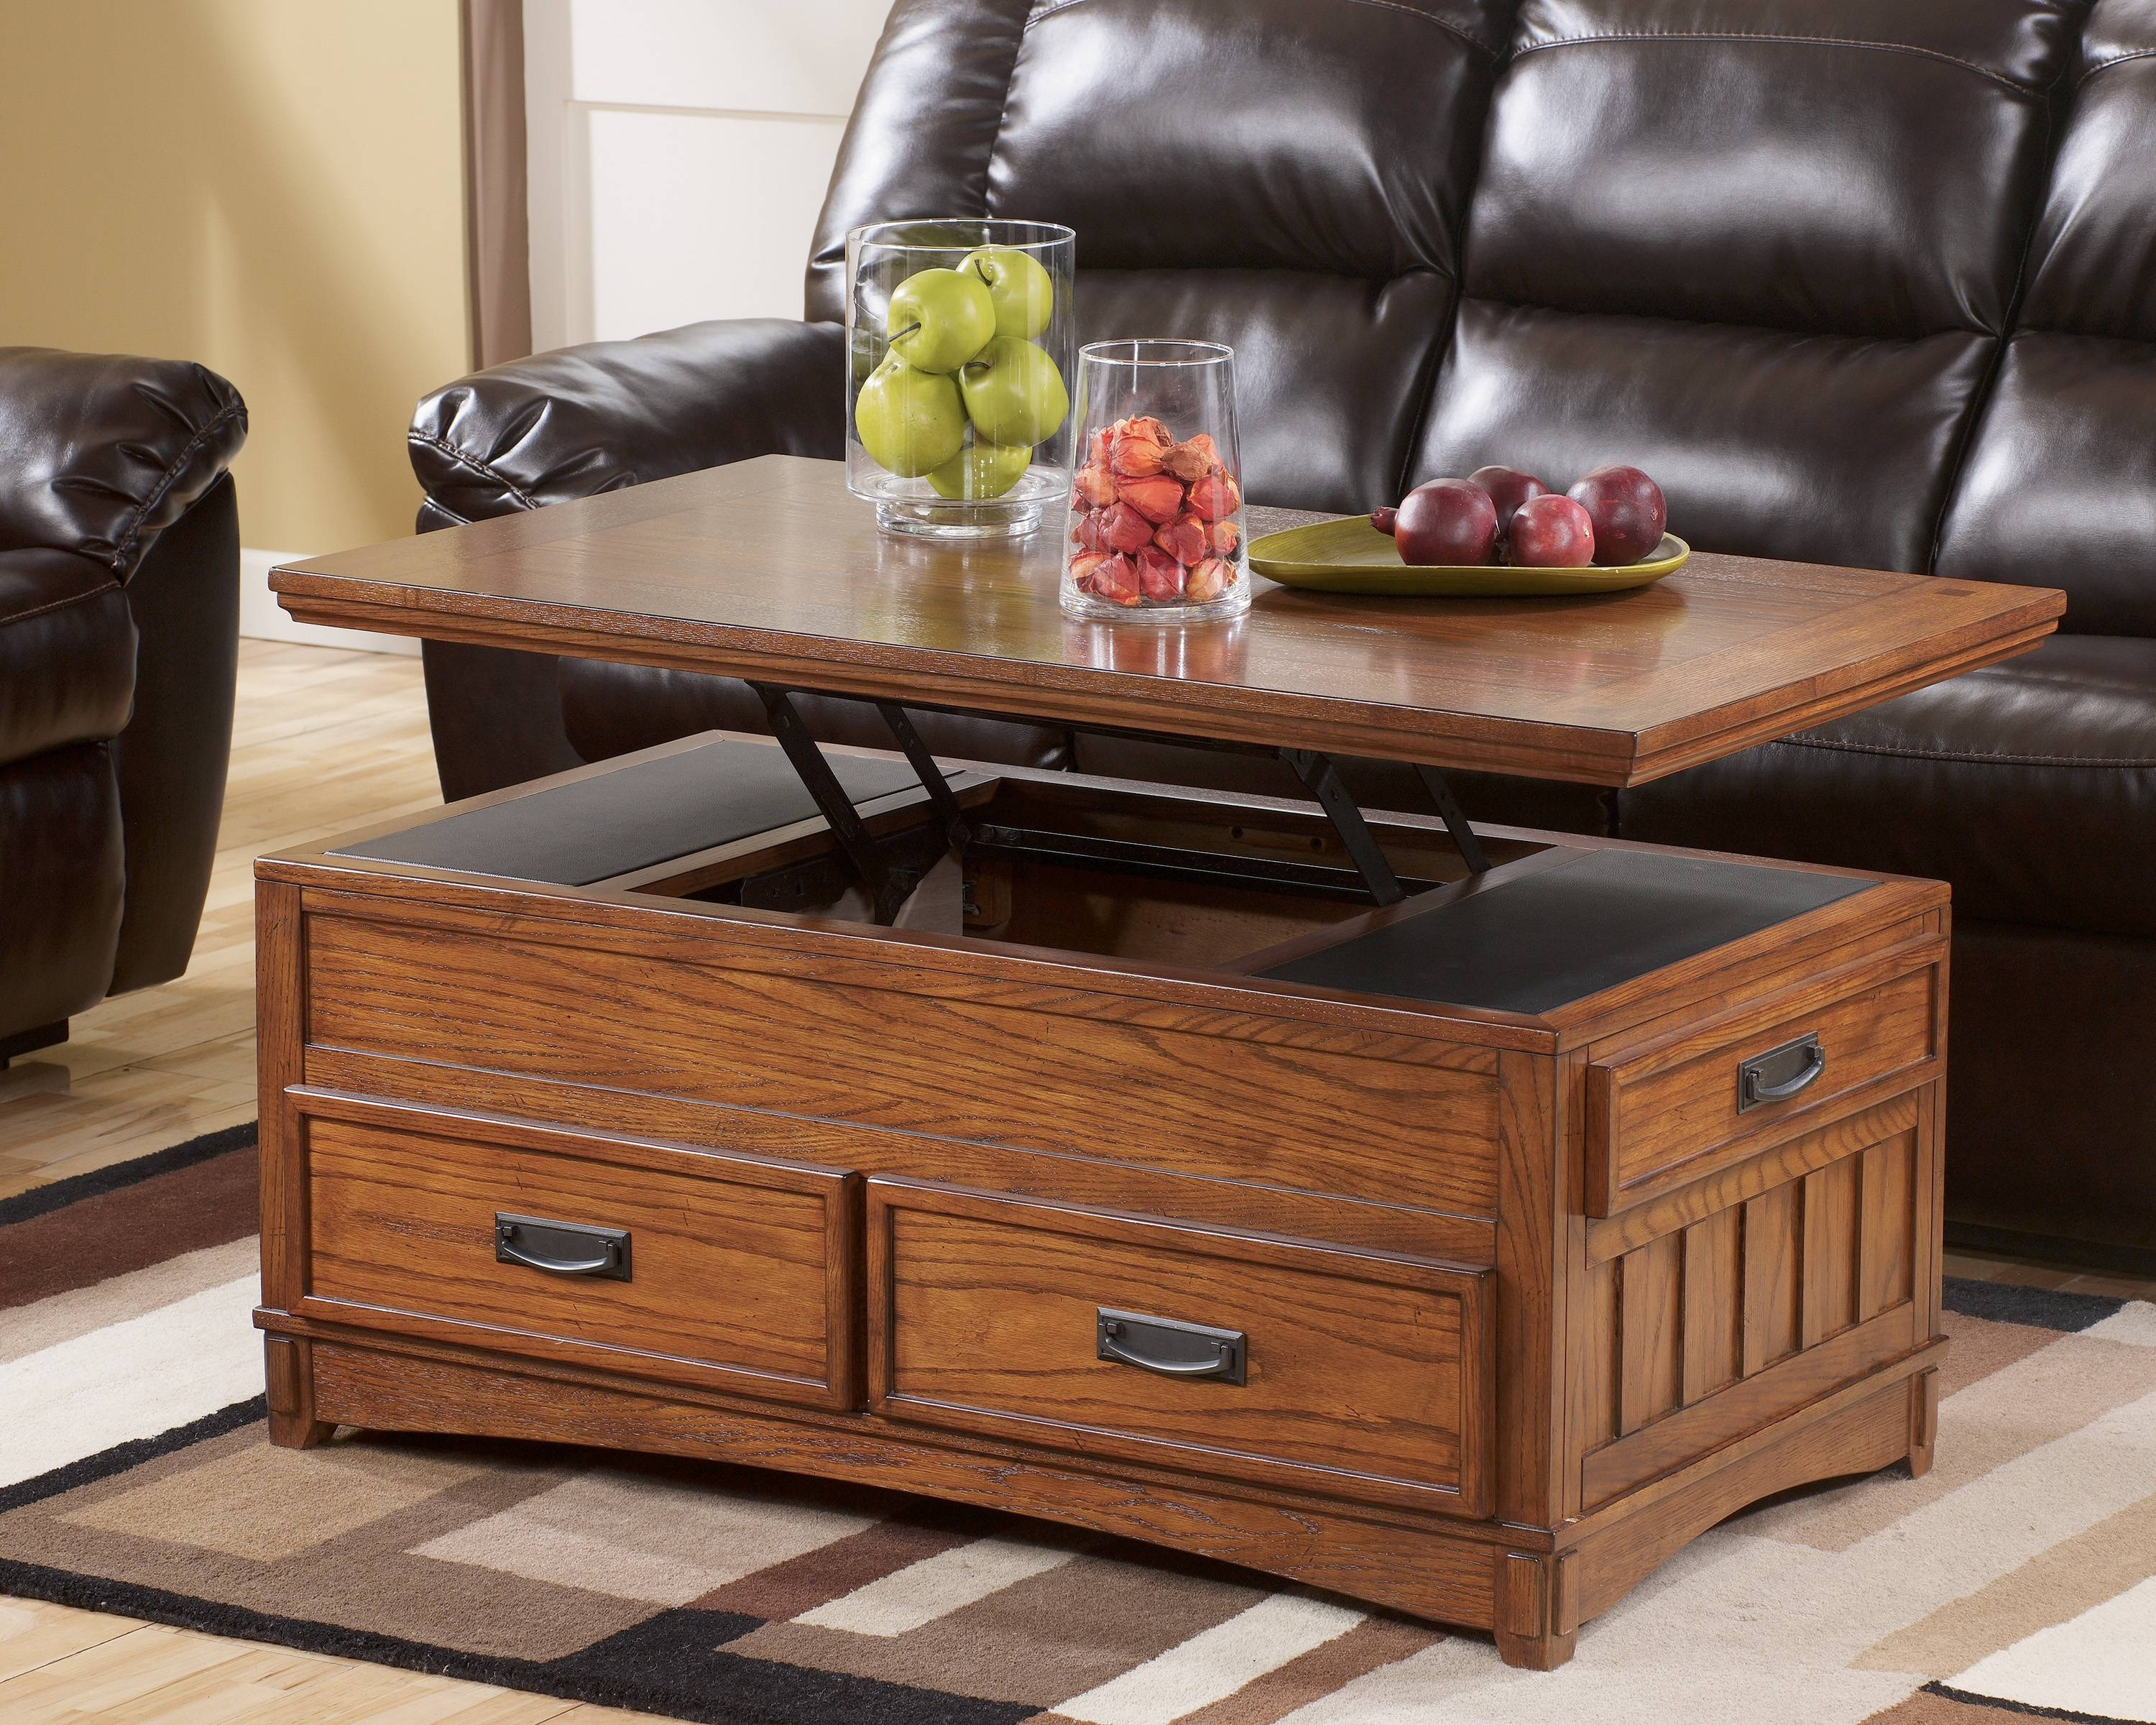 Sedona Lift Top Coffee Table In Java With 4 Storage Ottomans with regard to Coffee Tables With Lift Top Storage (Image 26 of 30)